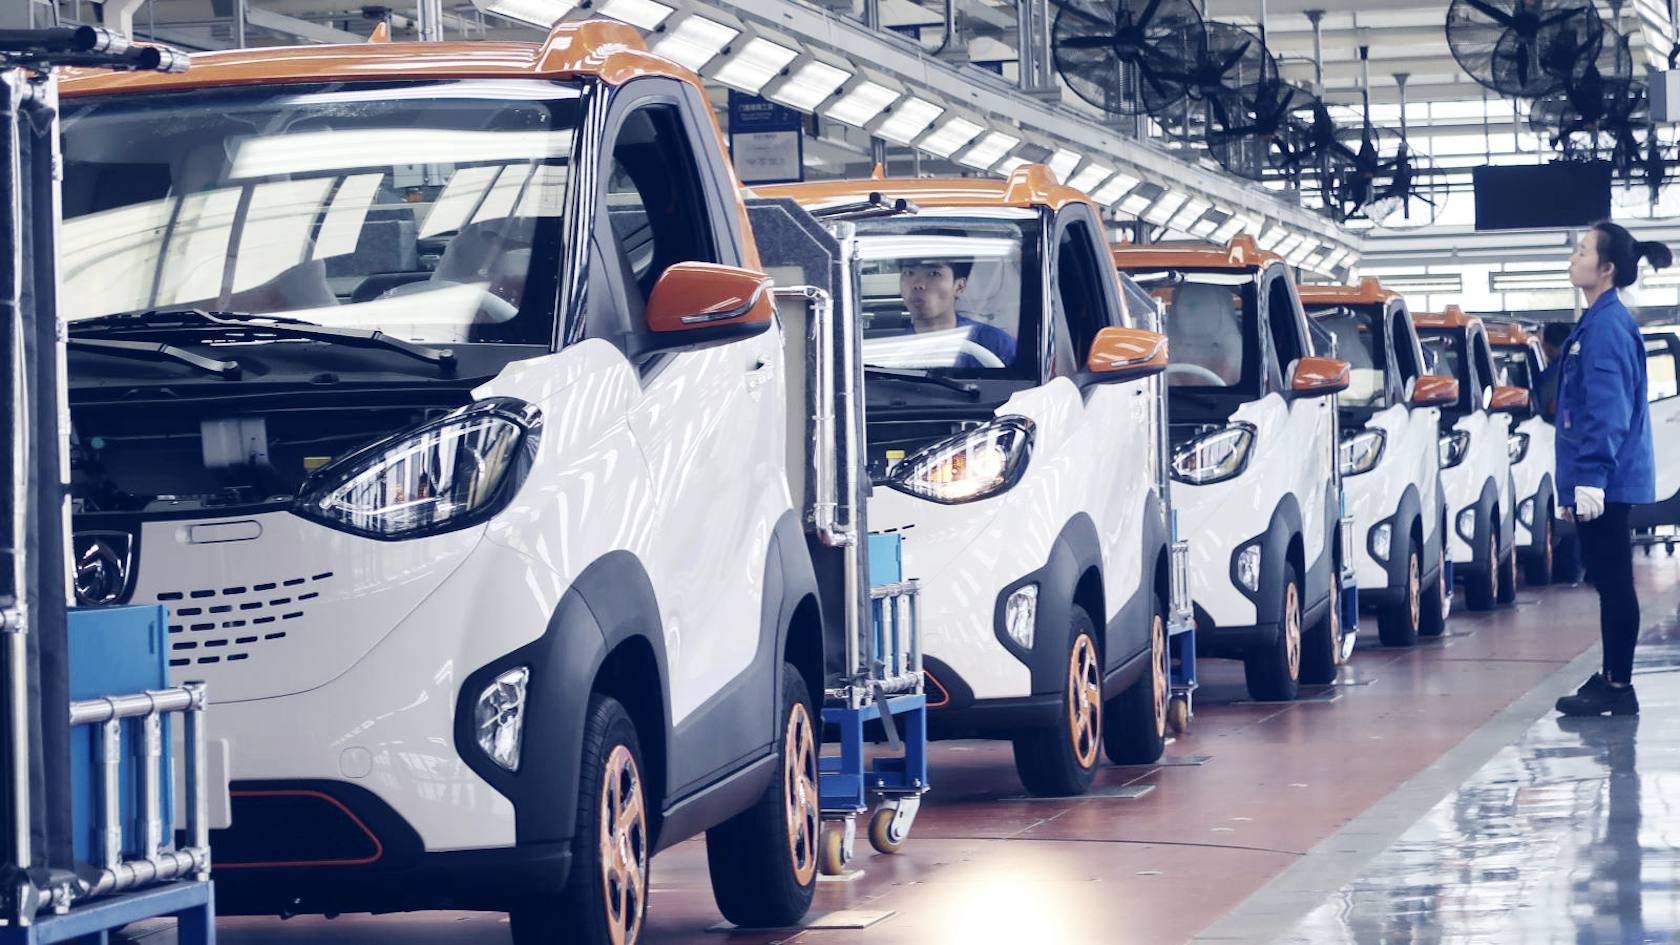 Market update: China to dominate electric vehicle market for years to come